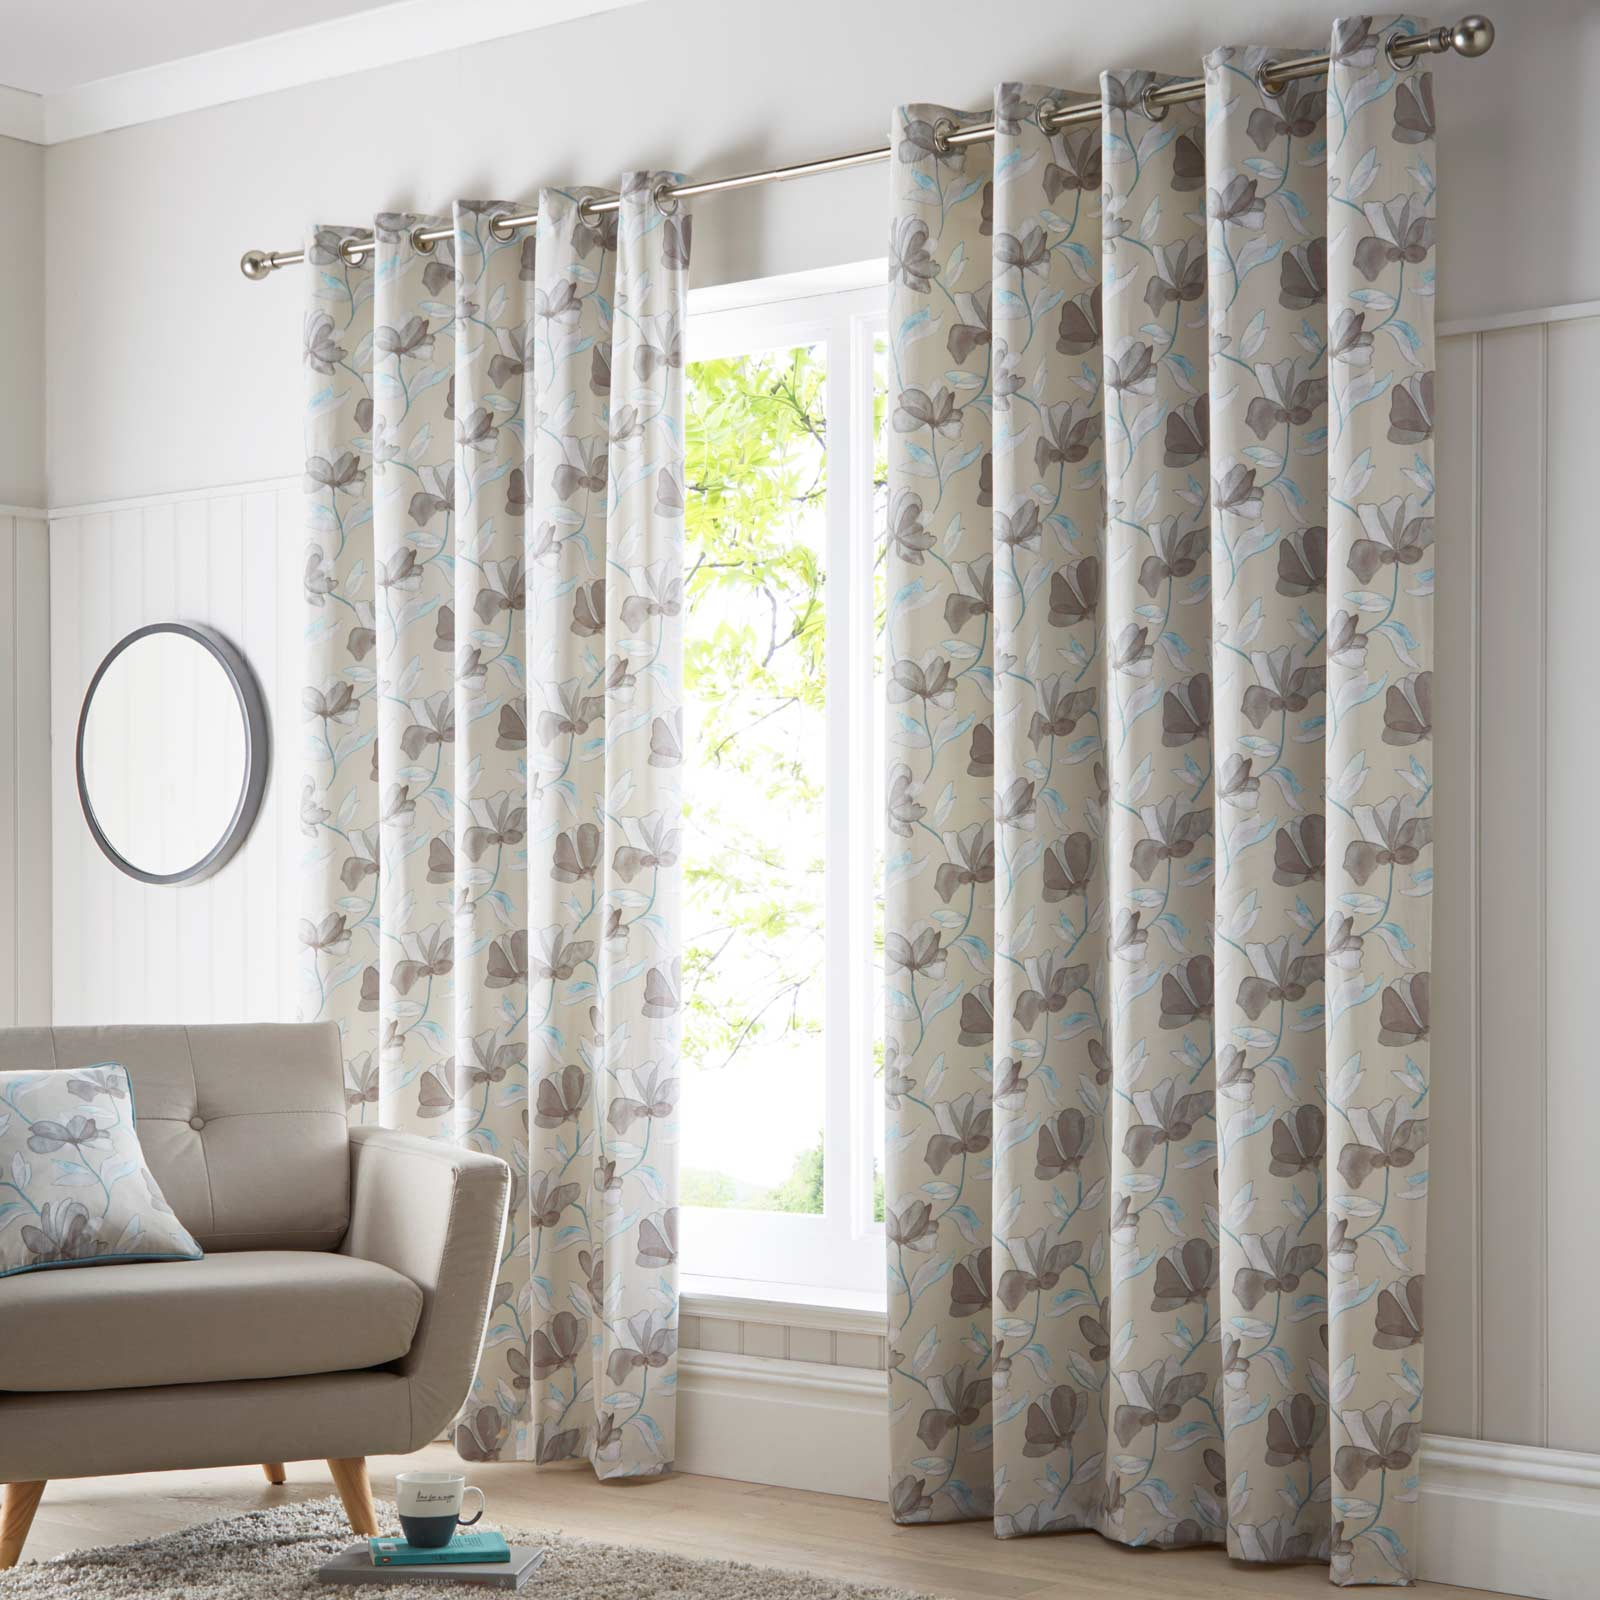 Springfield Lined Eyelet Curtains Teal - 46'' x 54'' - Ideal Textiles